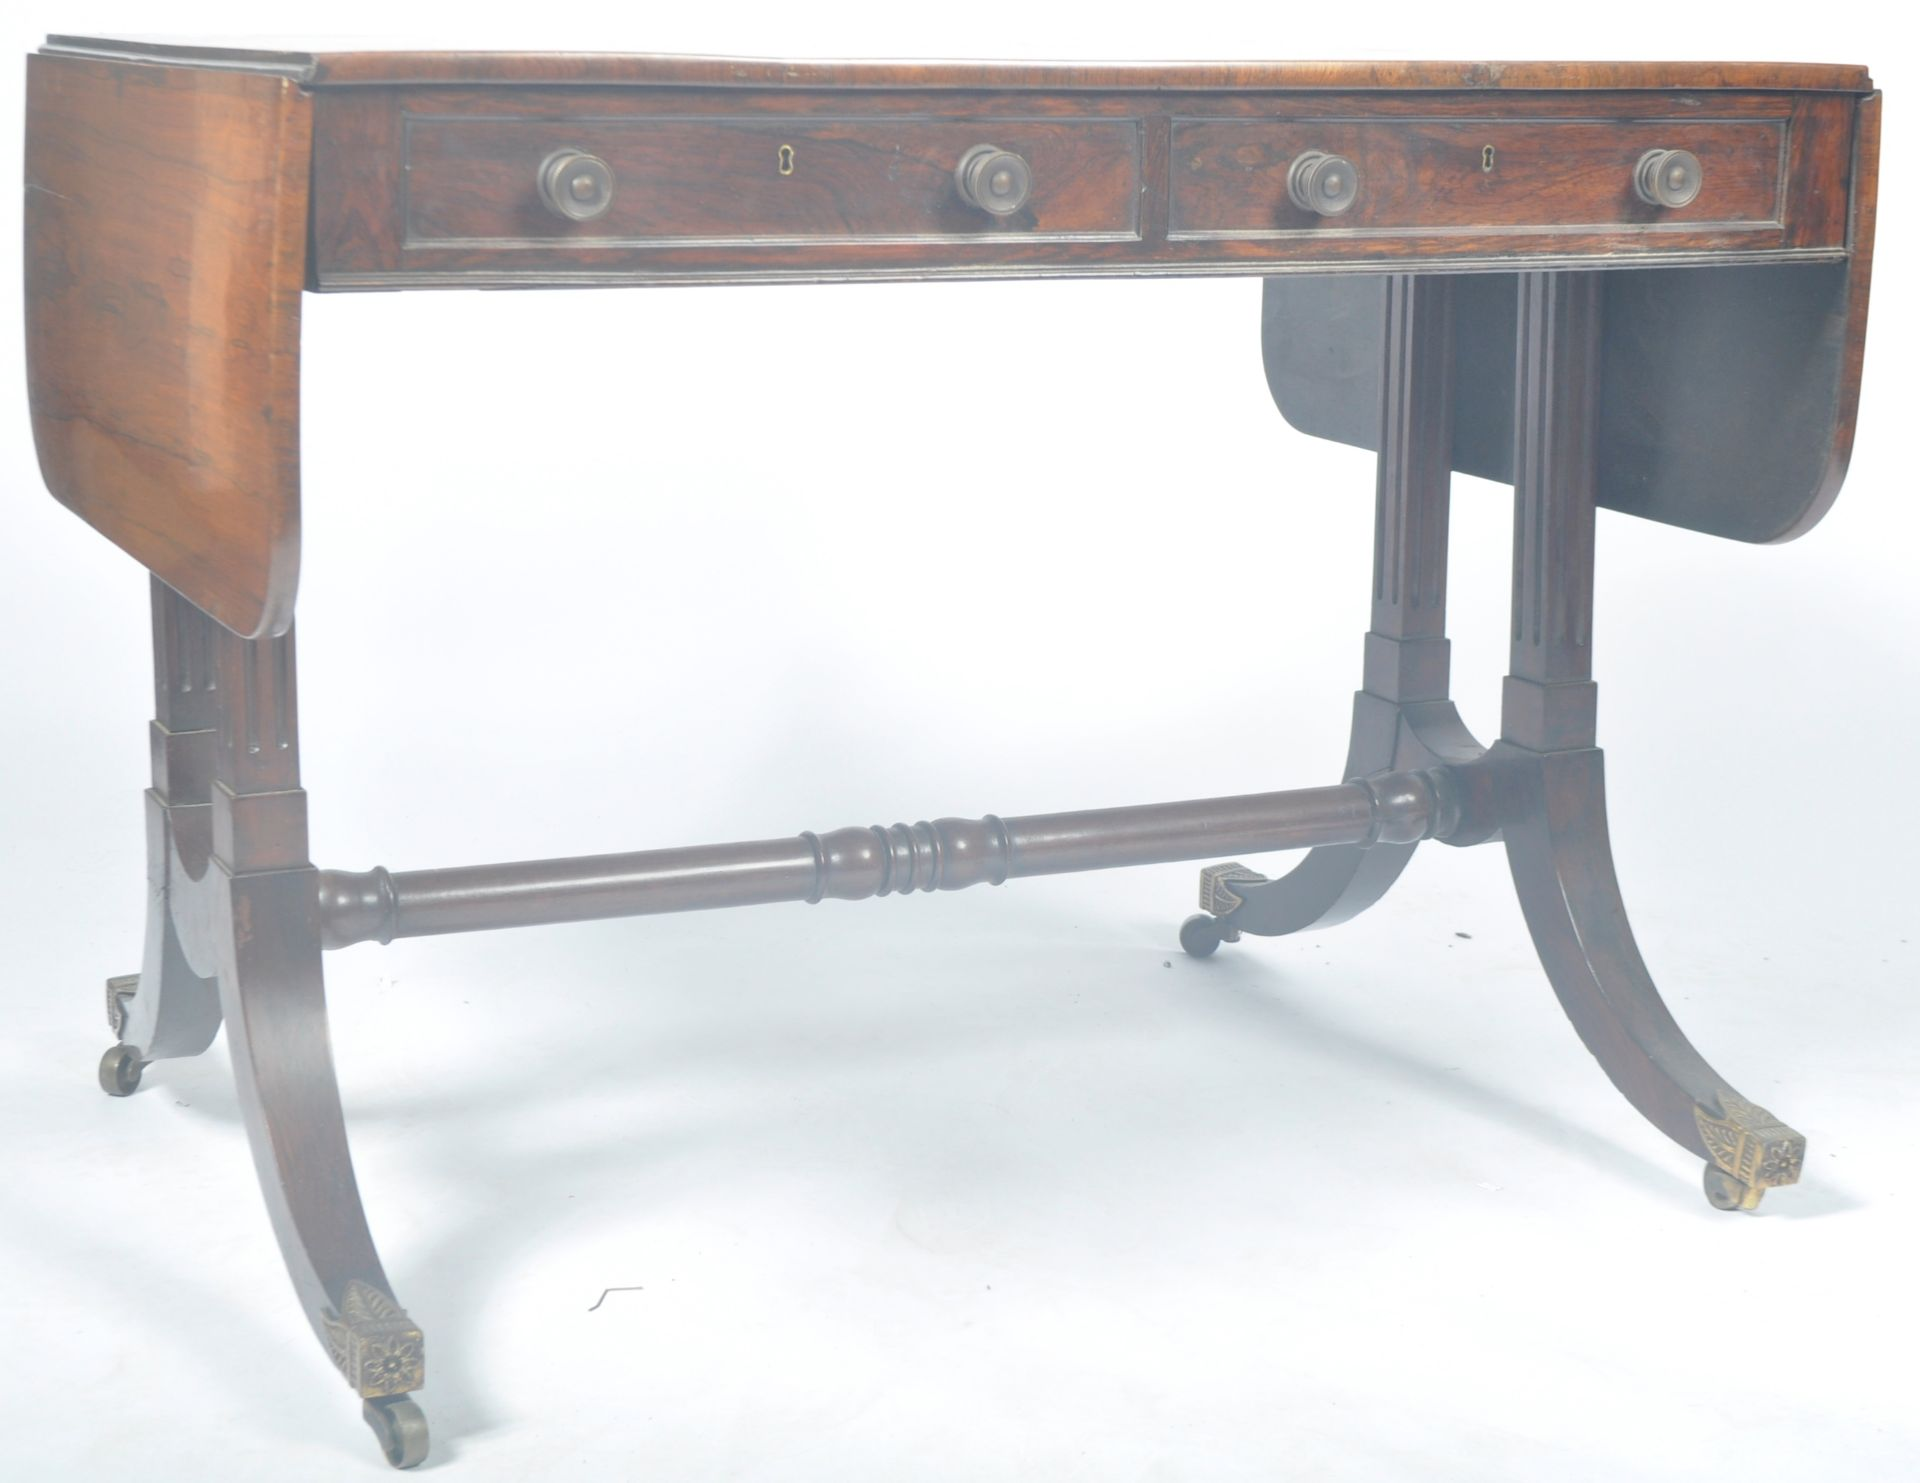 ANTIQUE ROSEWOOD REGENCY SOFA TABLE RETAILED BY HARRIS OF LONDON - Image 10 of 10